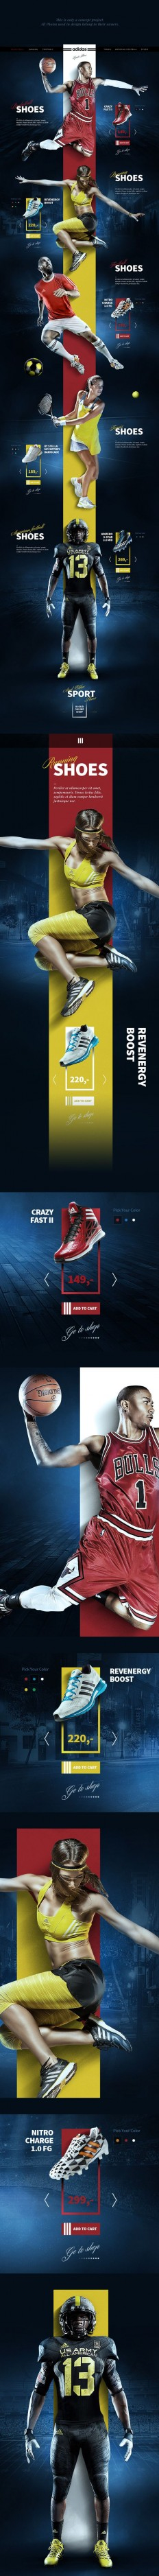 Sport Shoes Concept on Behance | SPORT • AD & DESING | Pinterest